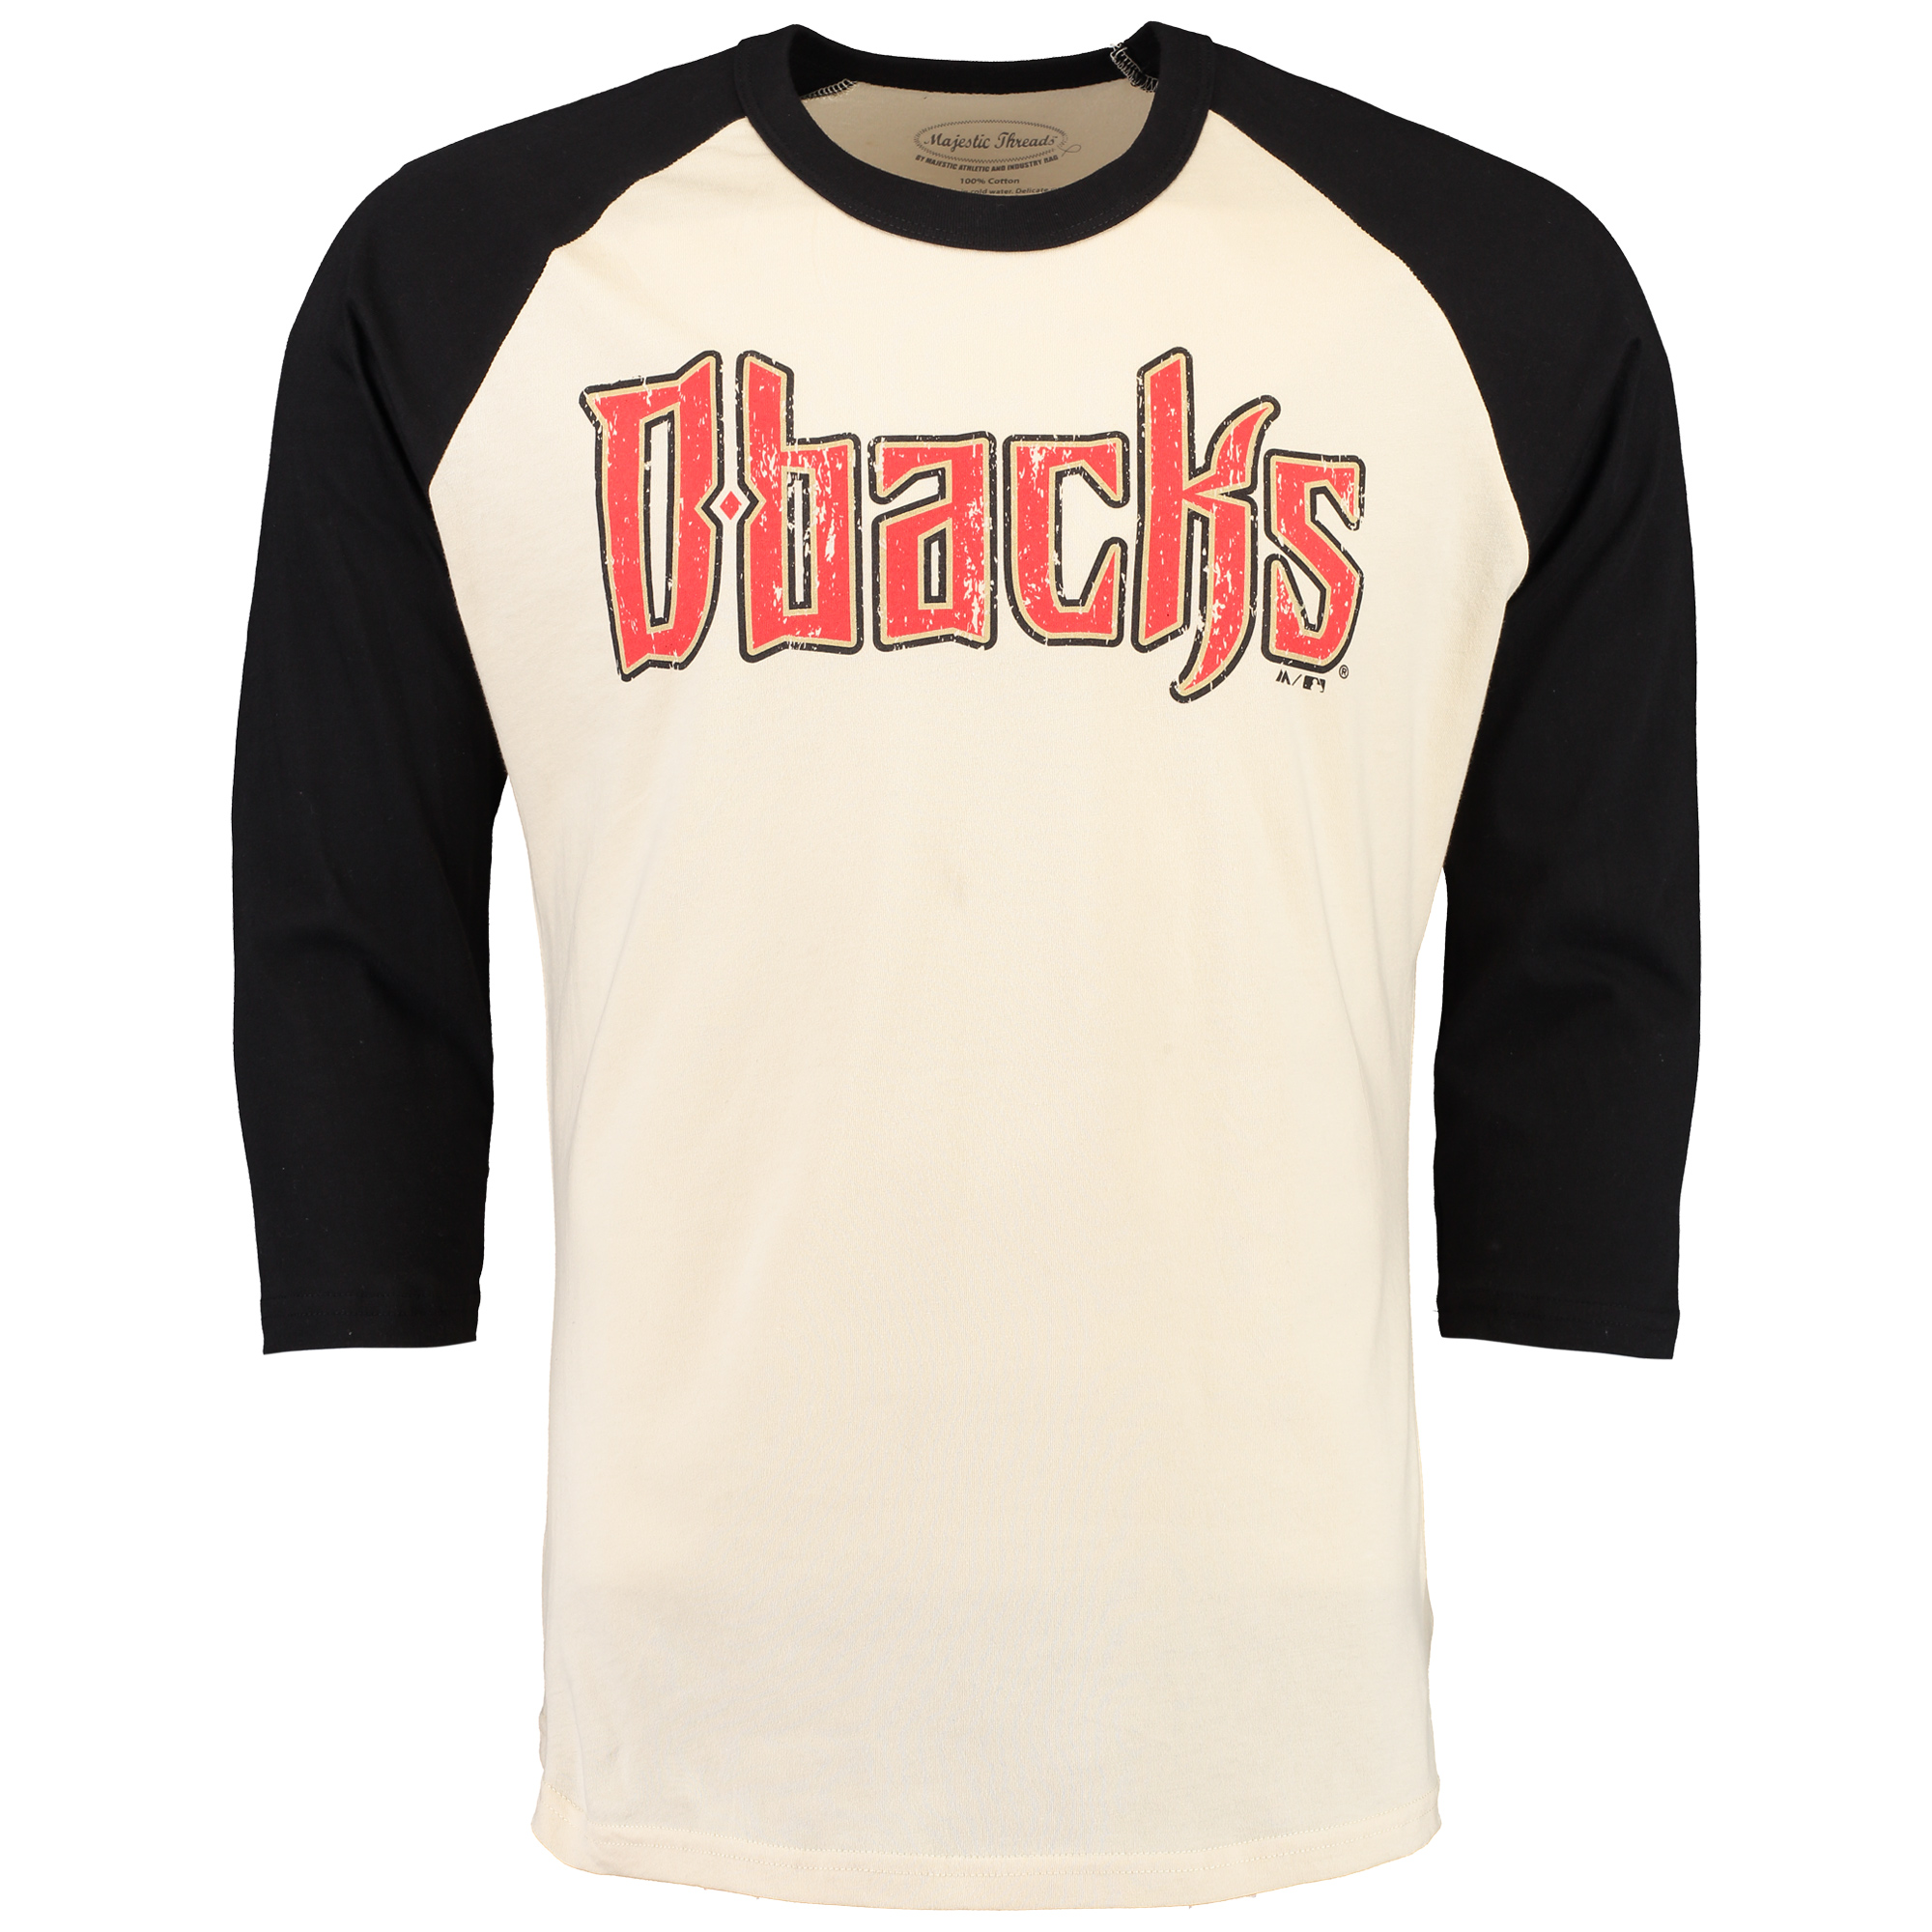 Arizona Diamondbacks Majestic Threads Softhand Vintage Cooperstown Three-Quarter Raglan Sleeve T-Shirt - Cream/Black